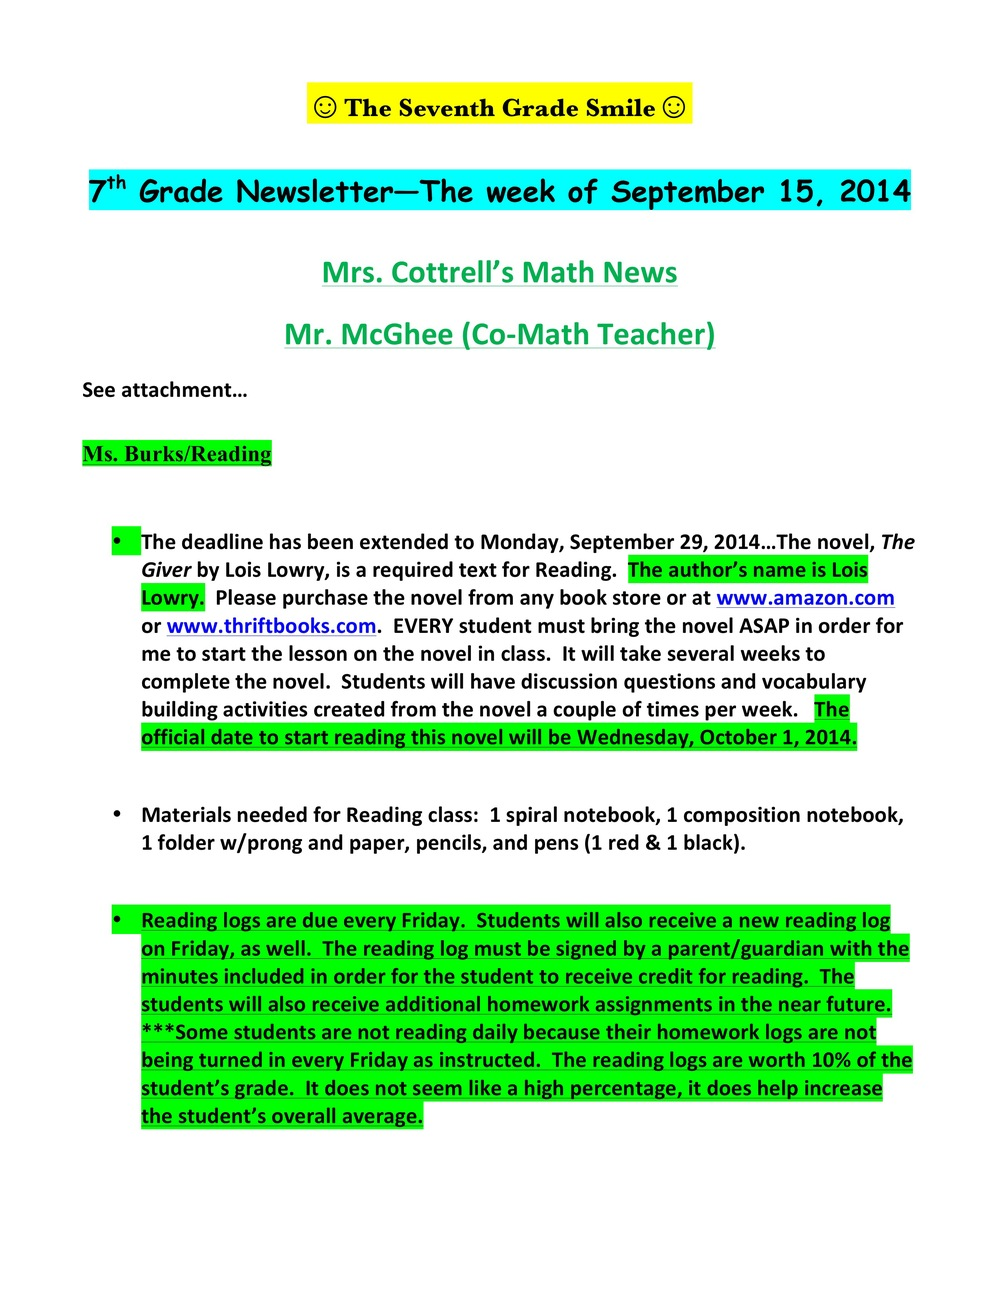 Newsletter Image7th grade 9-15-2014.jpeg